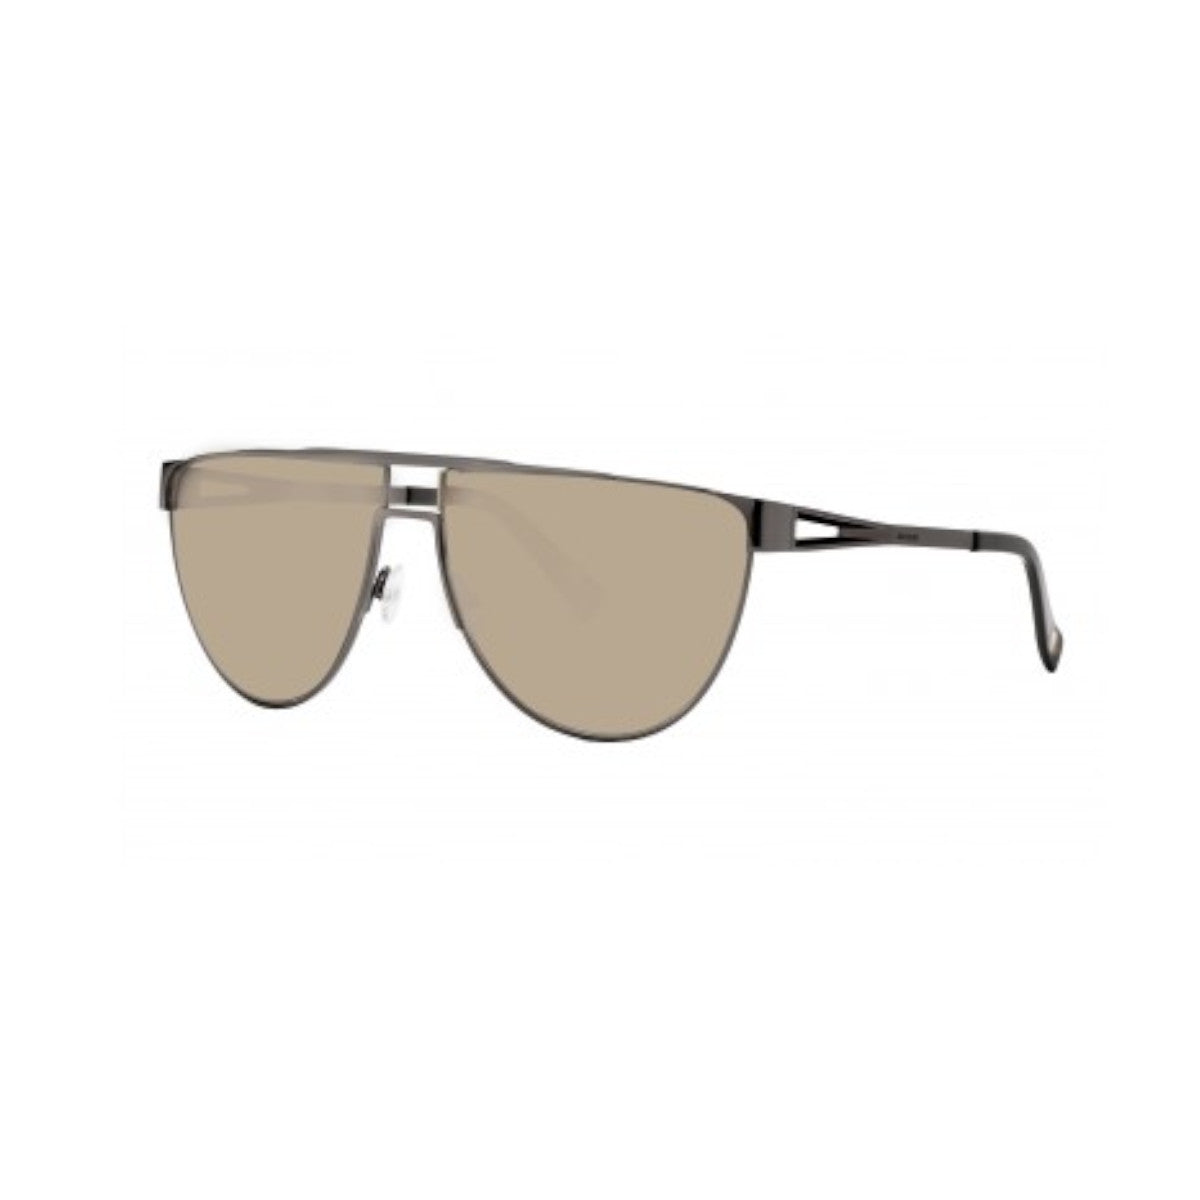 Balmain Ladies Brown Lens Sunglasses - BL2052-01 61-12-140